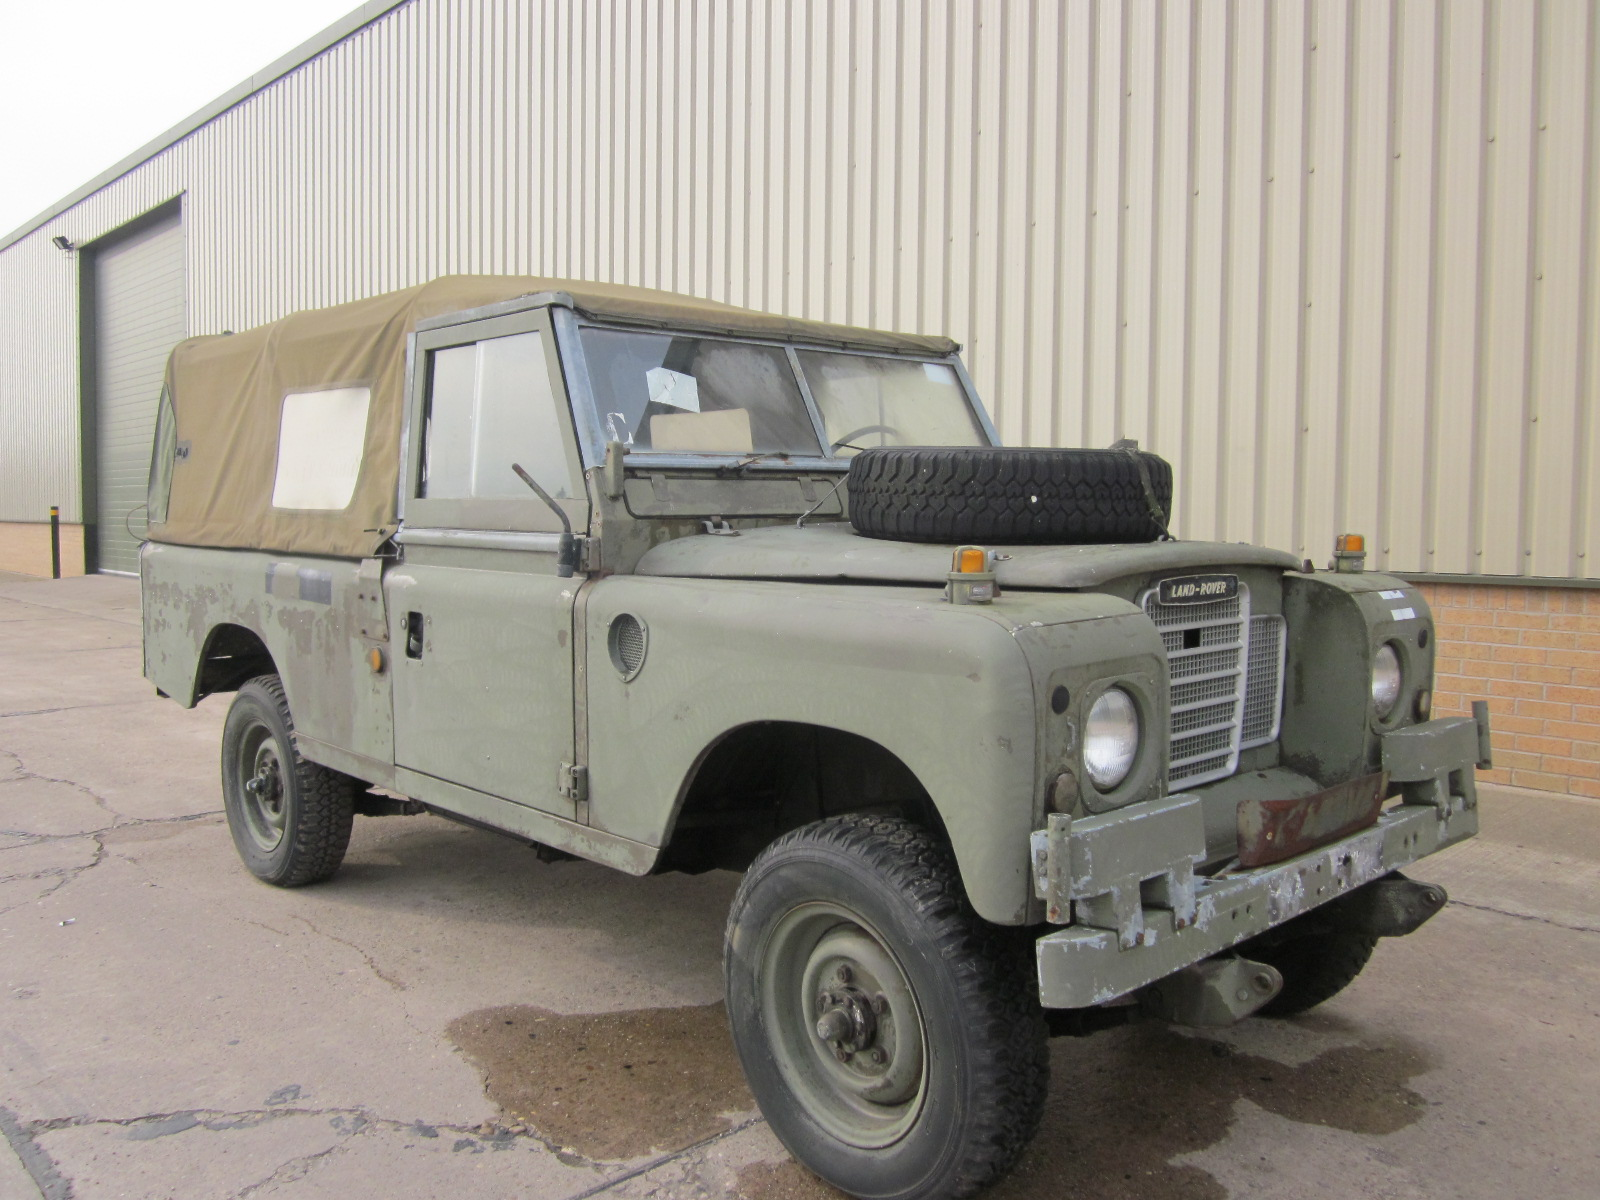 Land Rover Series 3 109 (Diesel) - ex military vehicles for sale, mod surplus